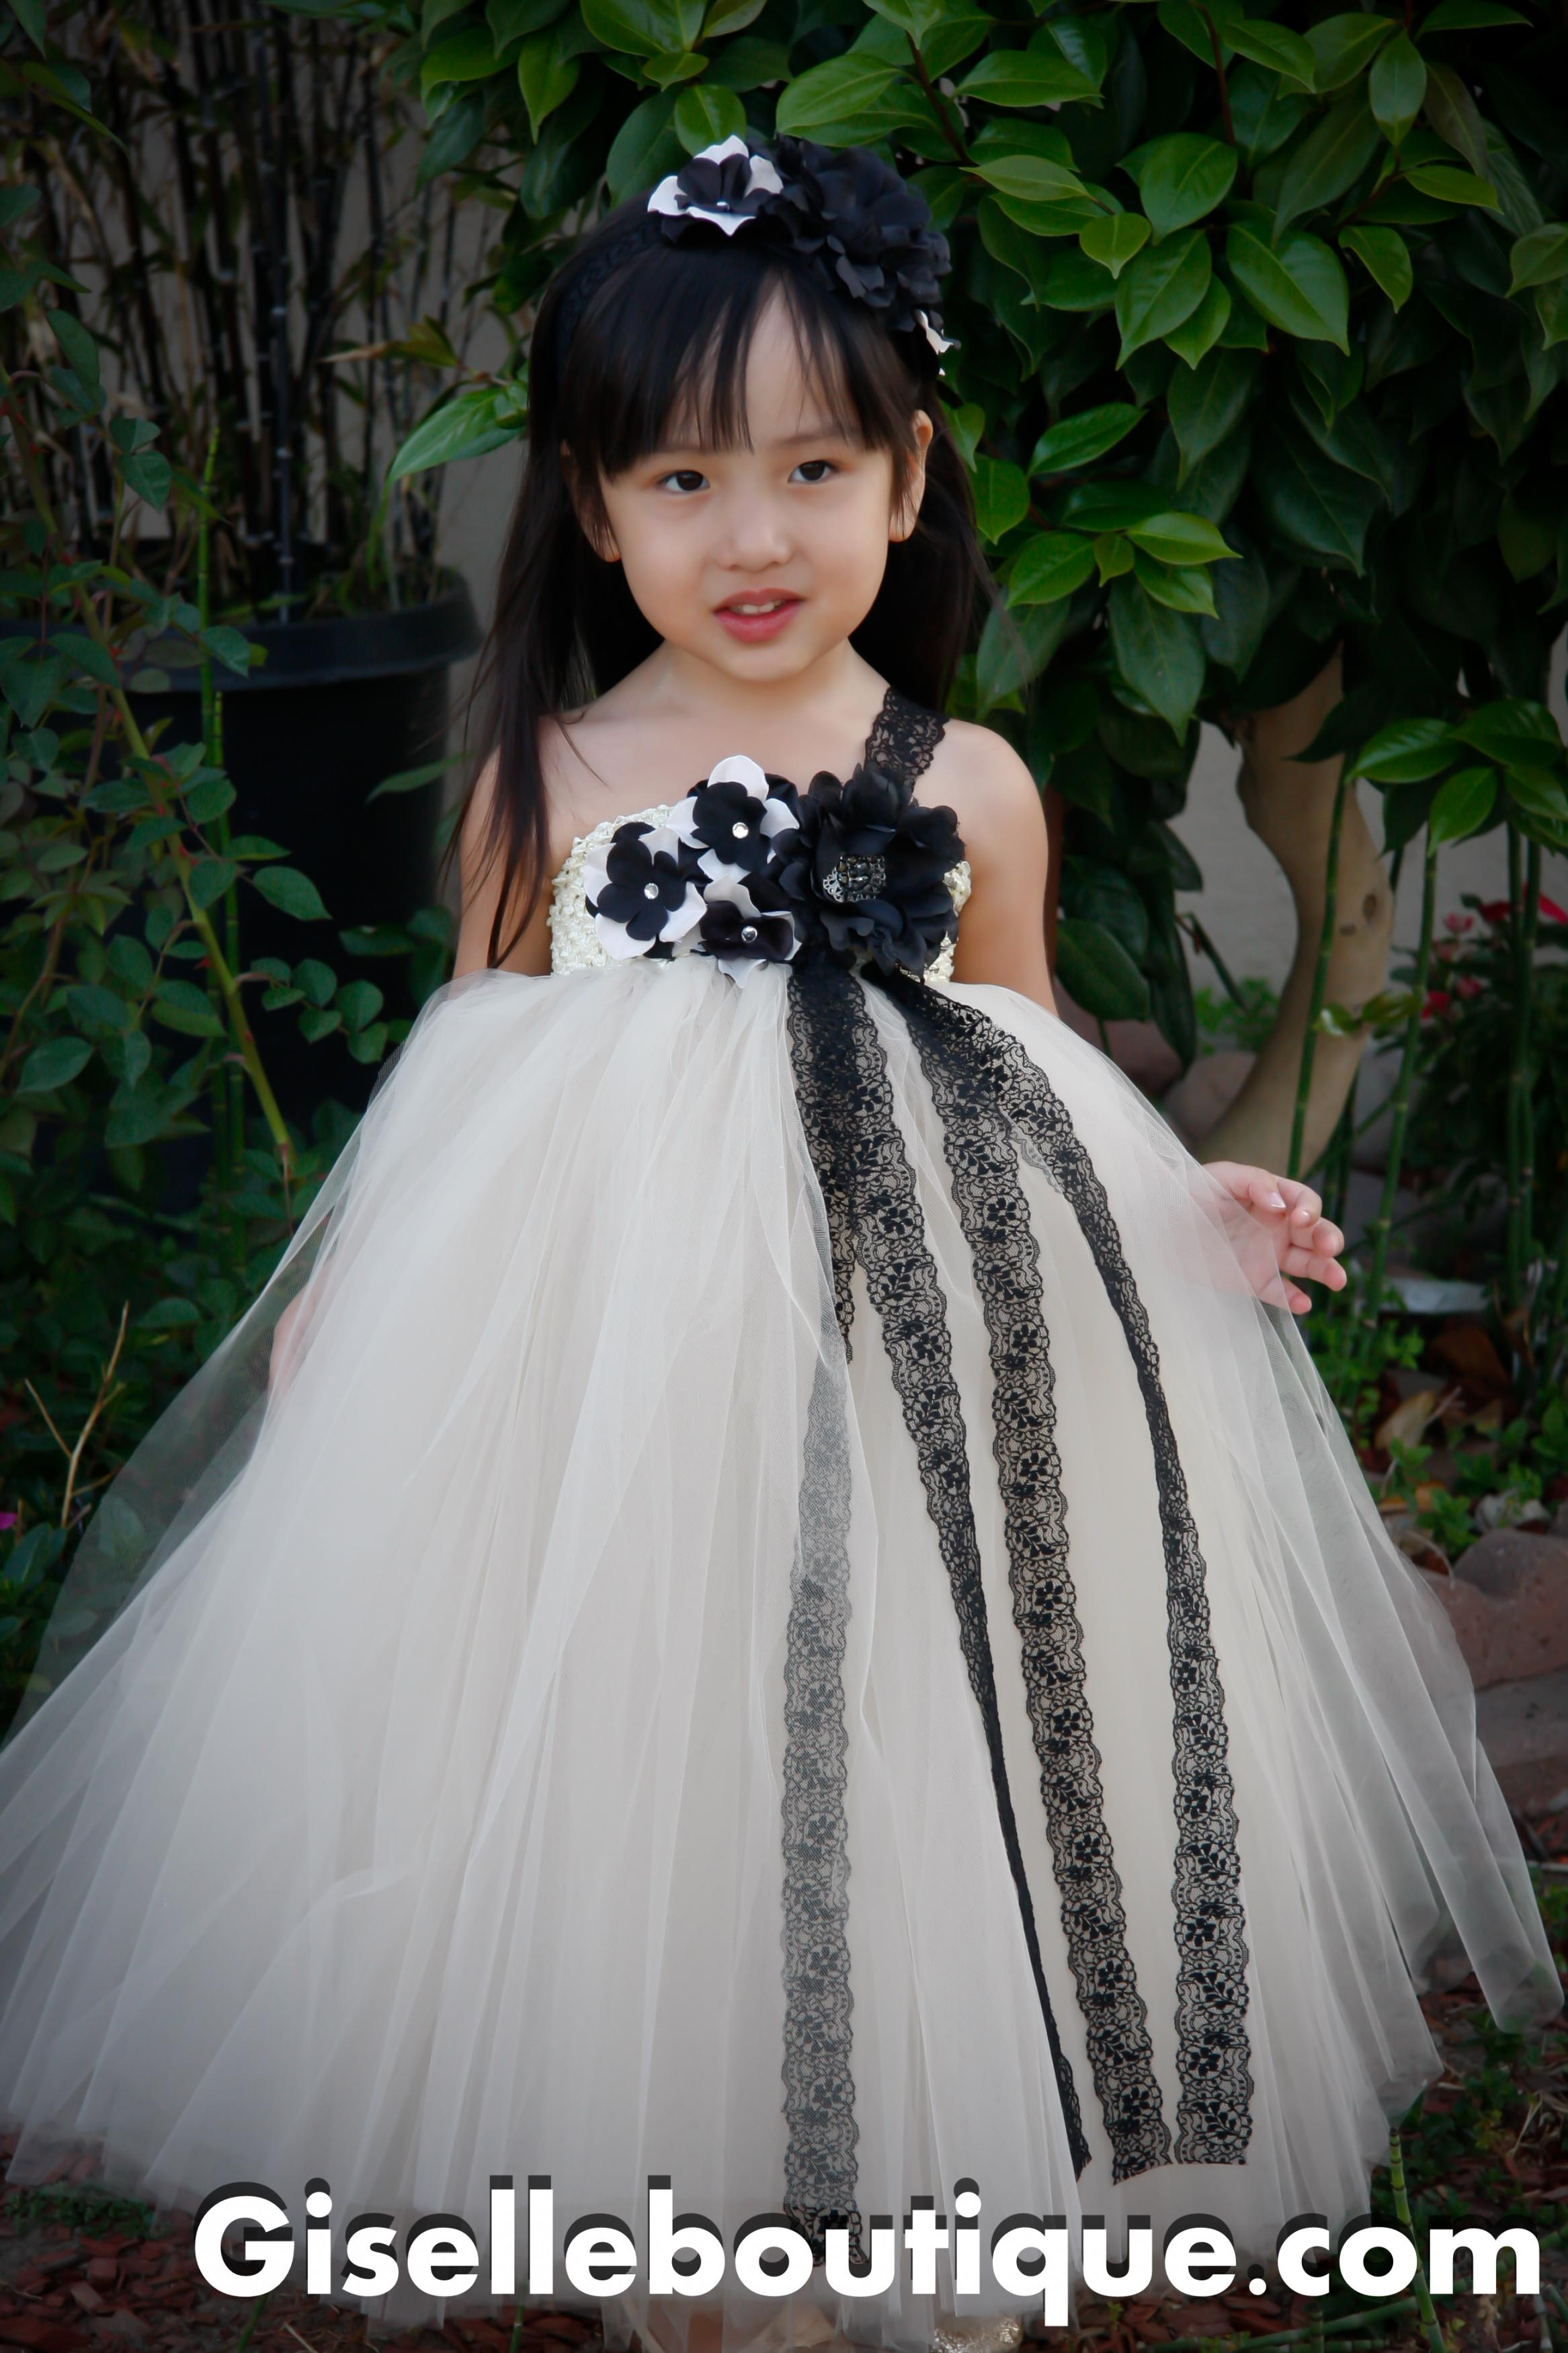 Flower Girl Dress Mesh With Black Lace Tutu Dress Baby Tutu Dress Toddler